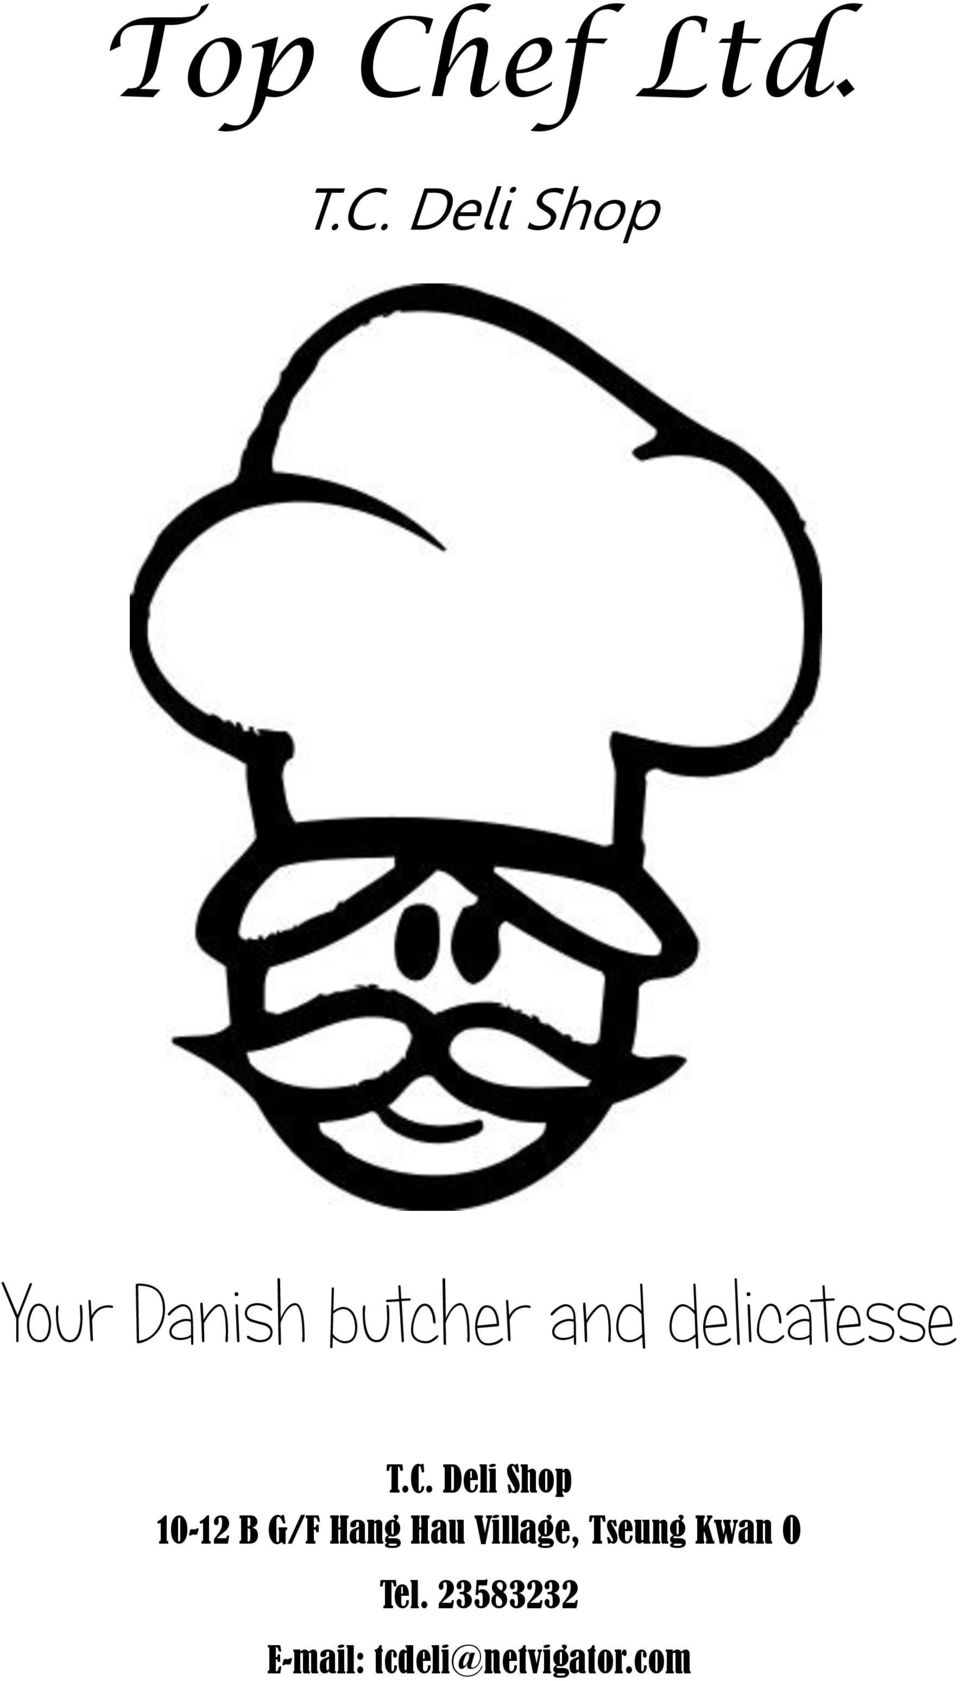 Deli Shop Your Danish butcher and